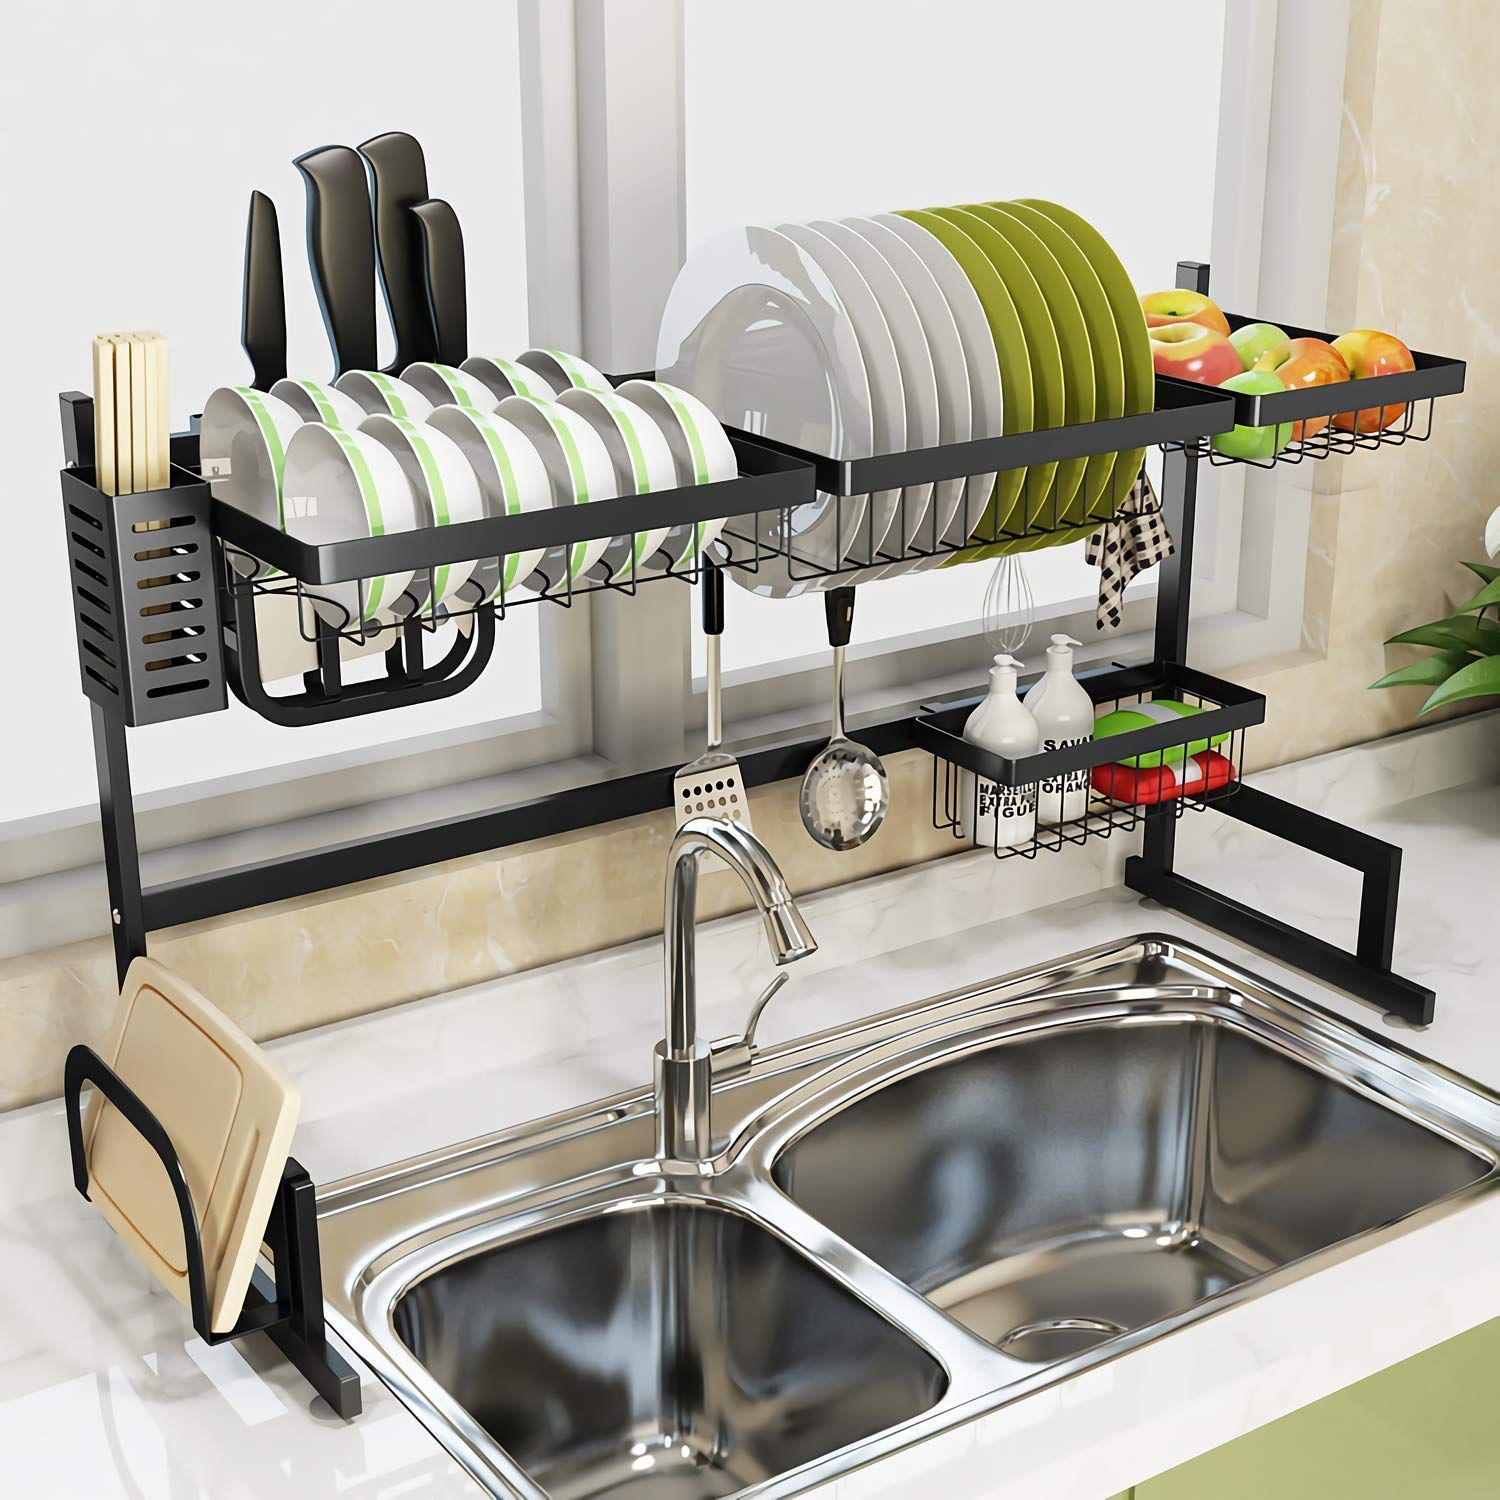 Black Over Sink Dish Drying Rack Sink Length 32 5 Inch